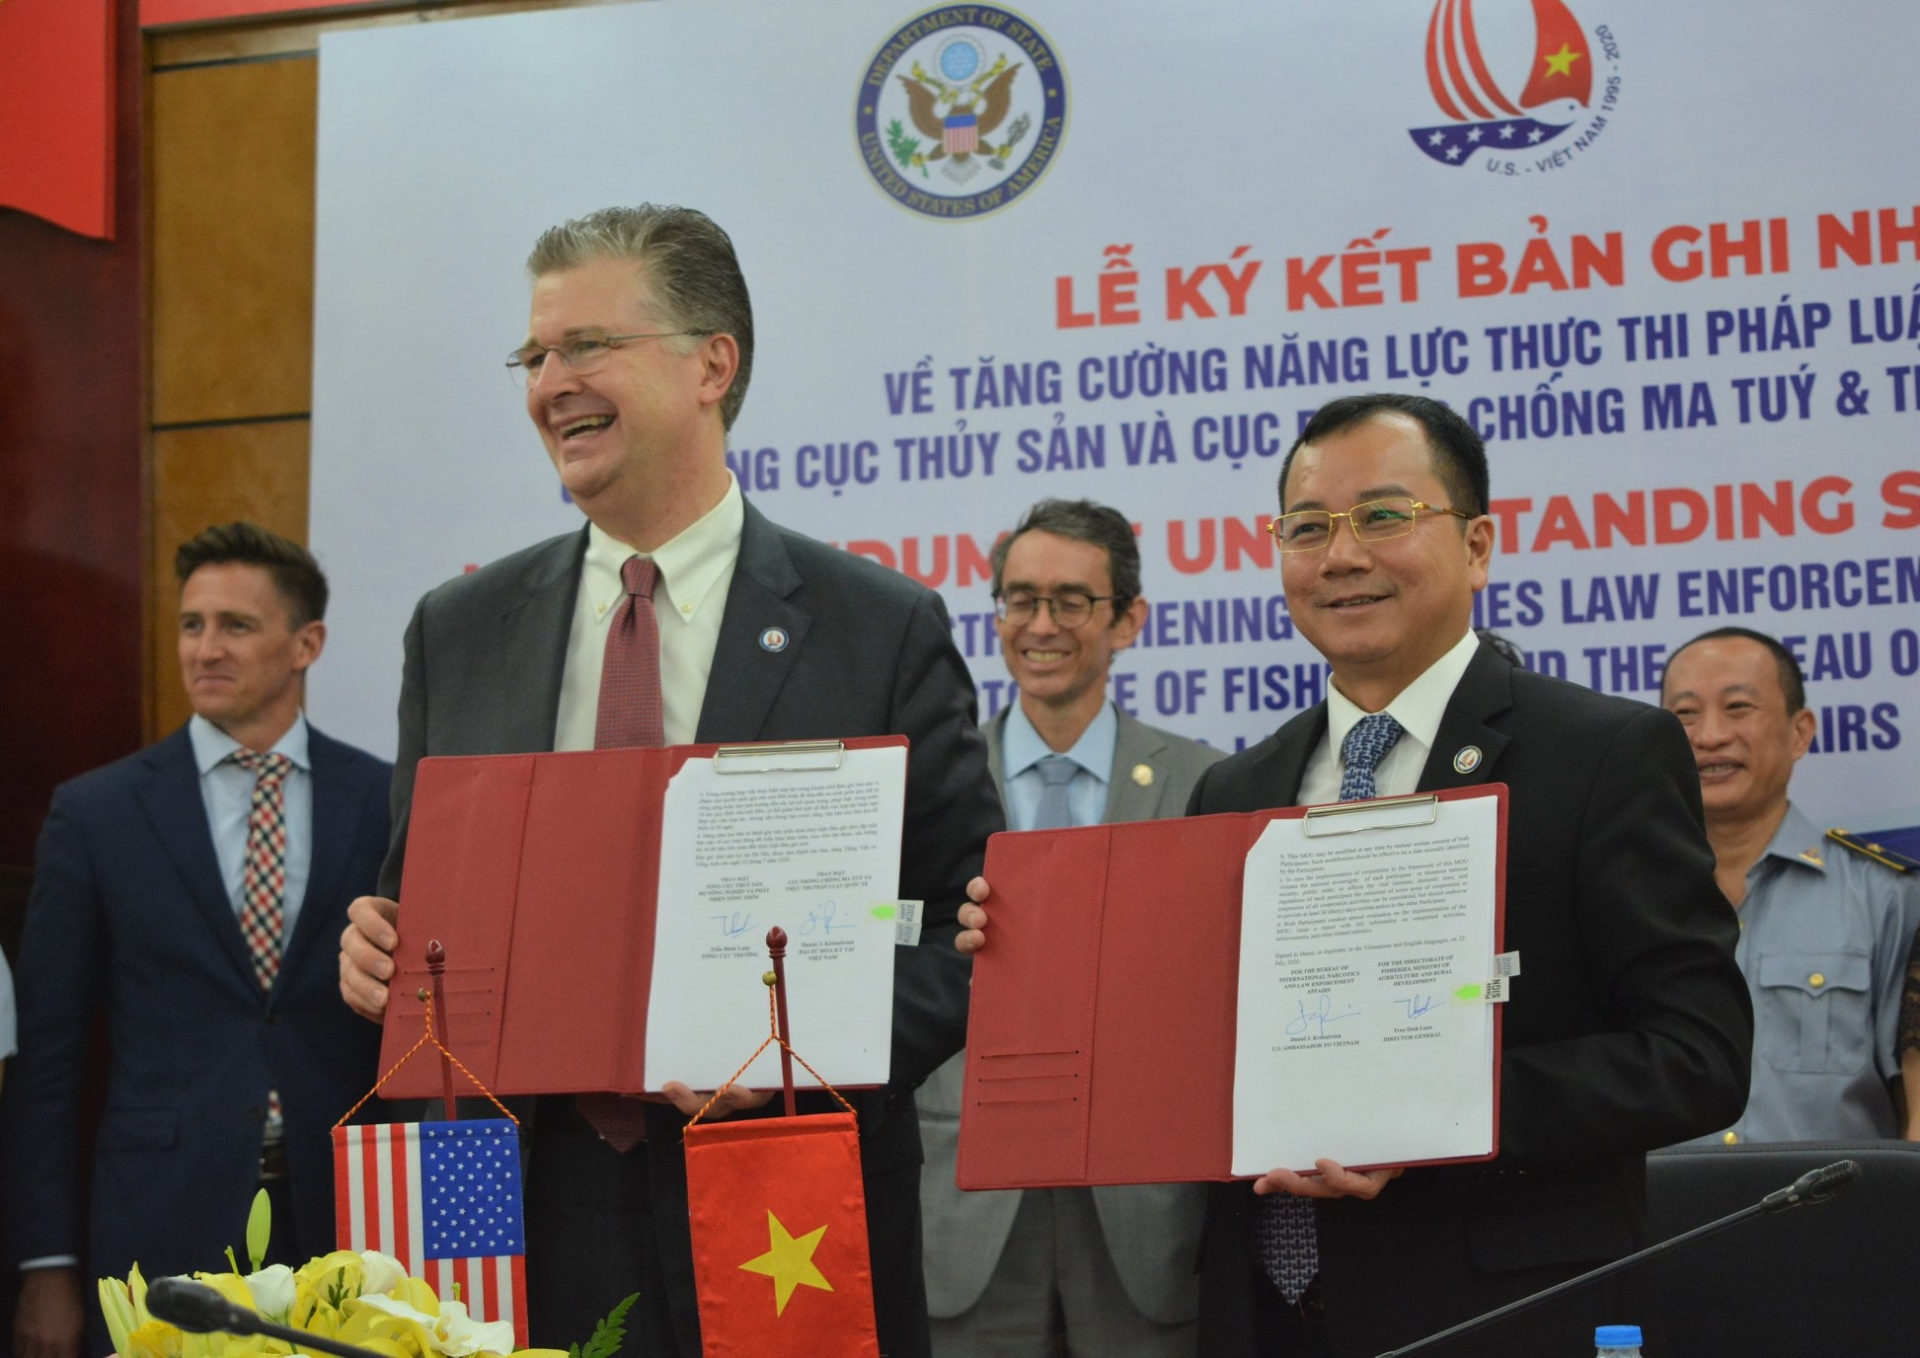 us helps vn strengthen fisheries sustainability and combat iuu fishing